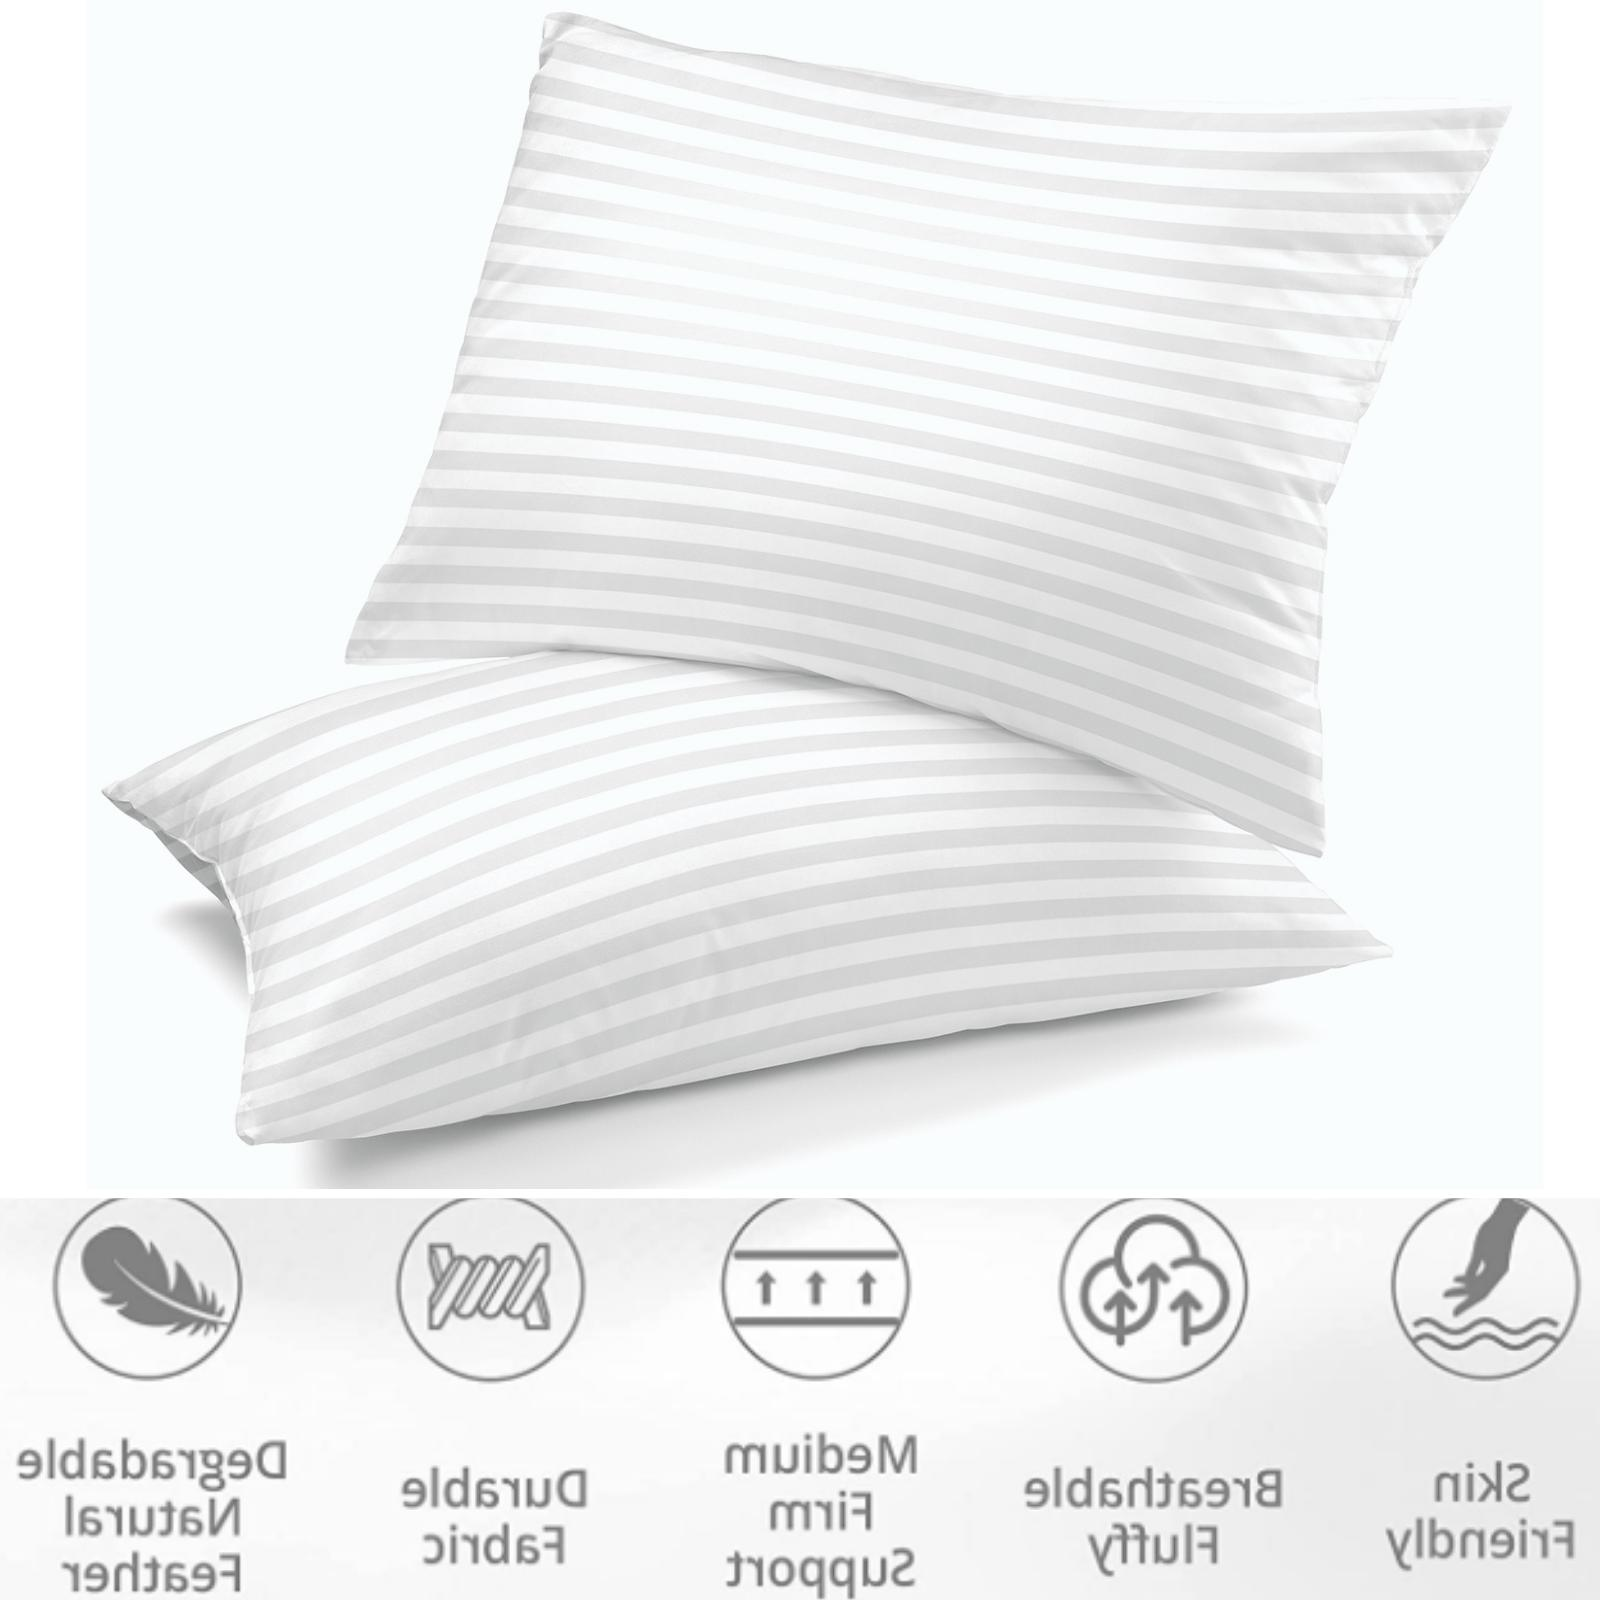 hypoallergenic bed pillows king pillows set of